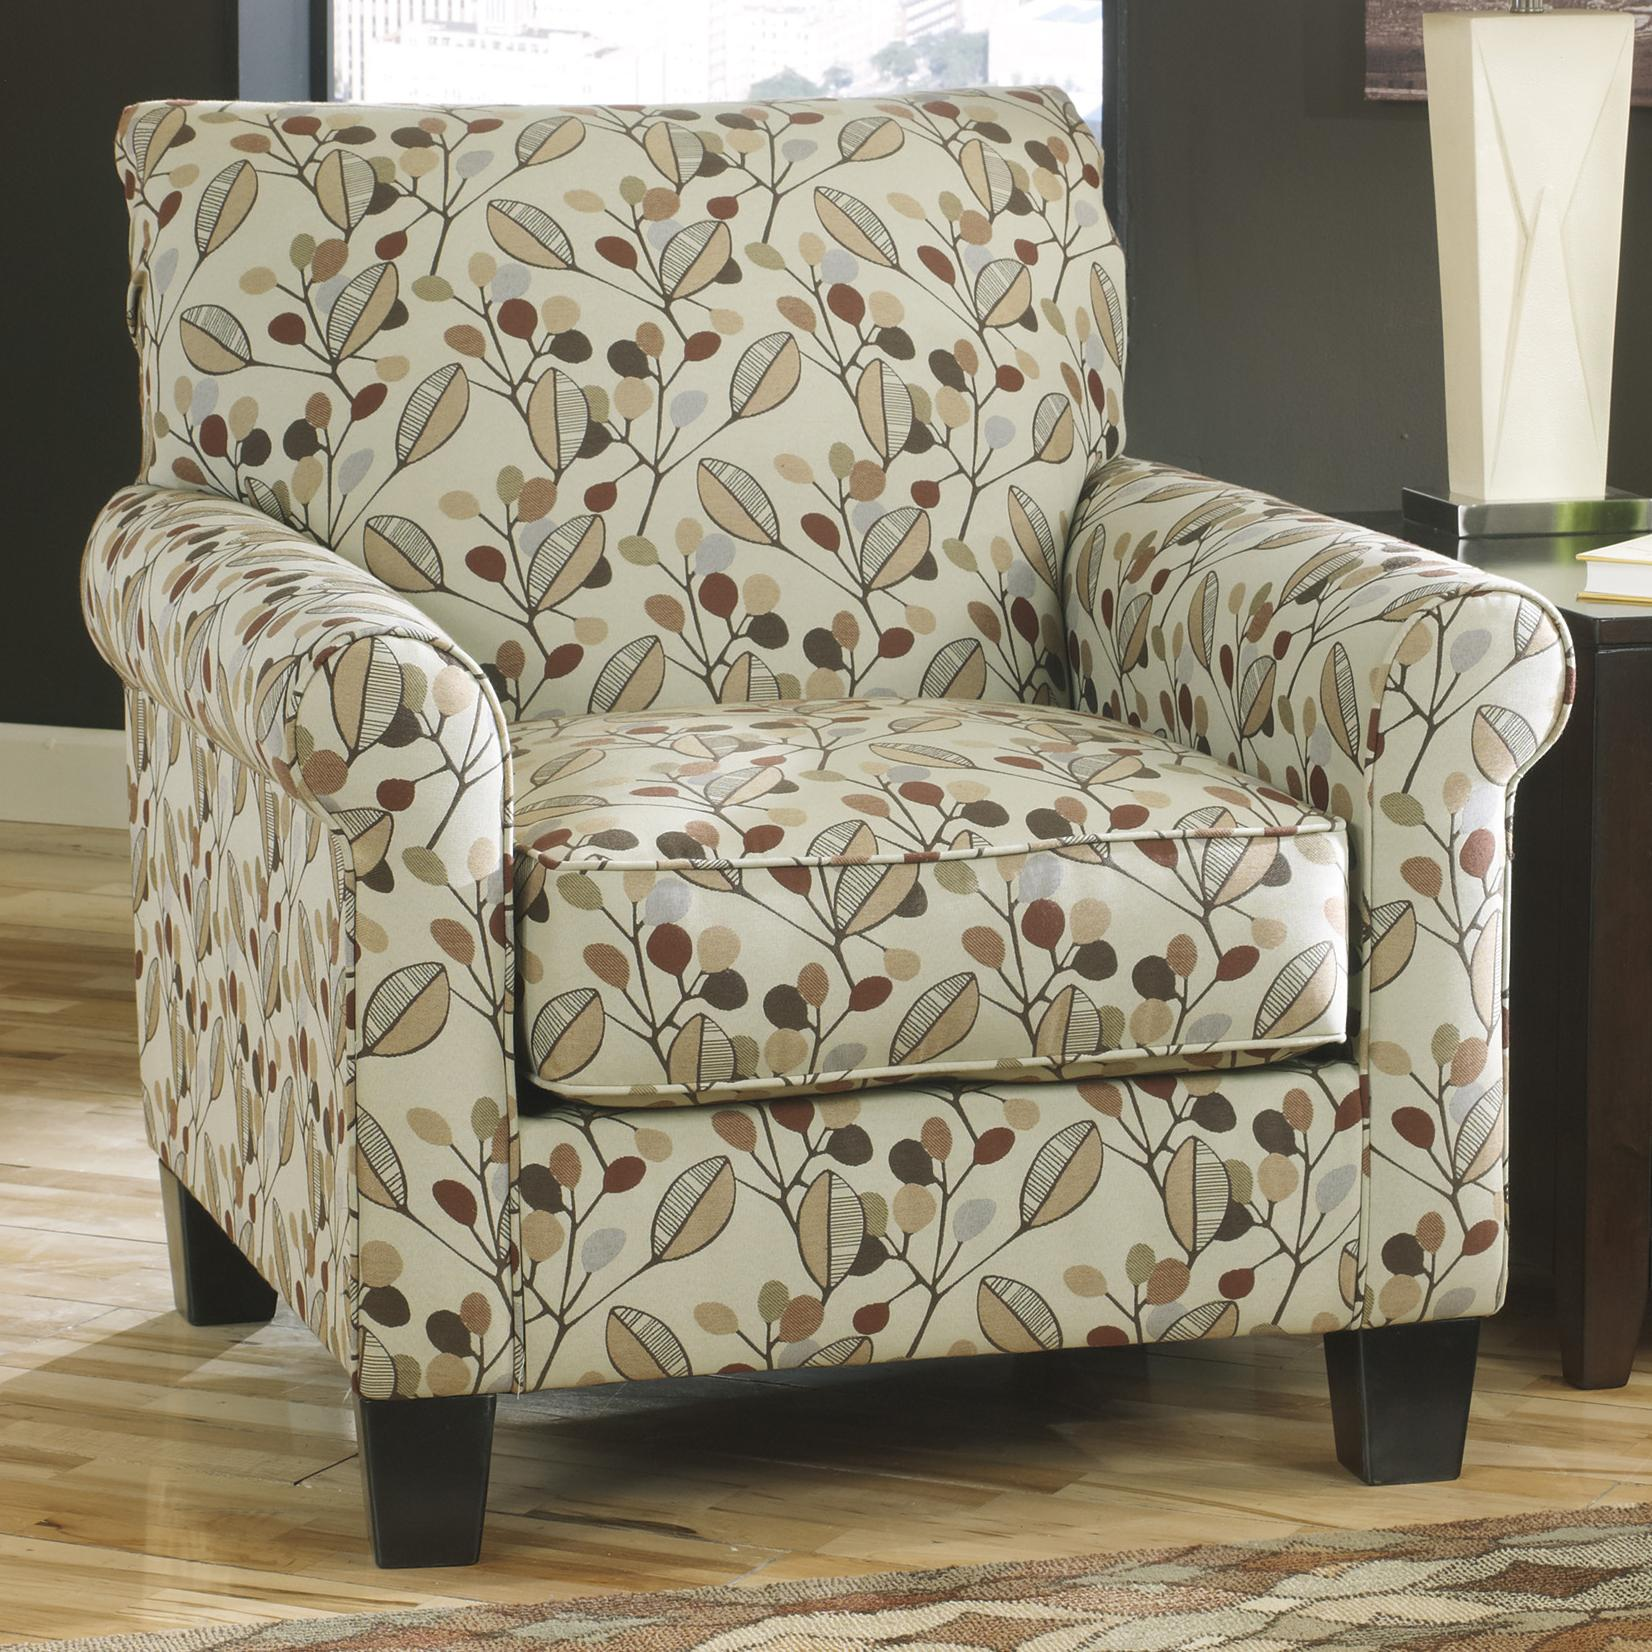 Accent Chair in Leaf Print Fabric by Benchcraft